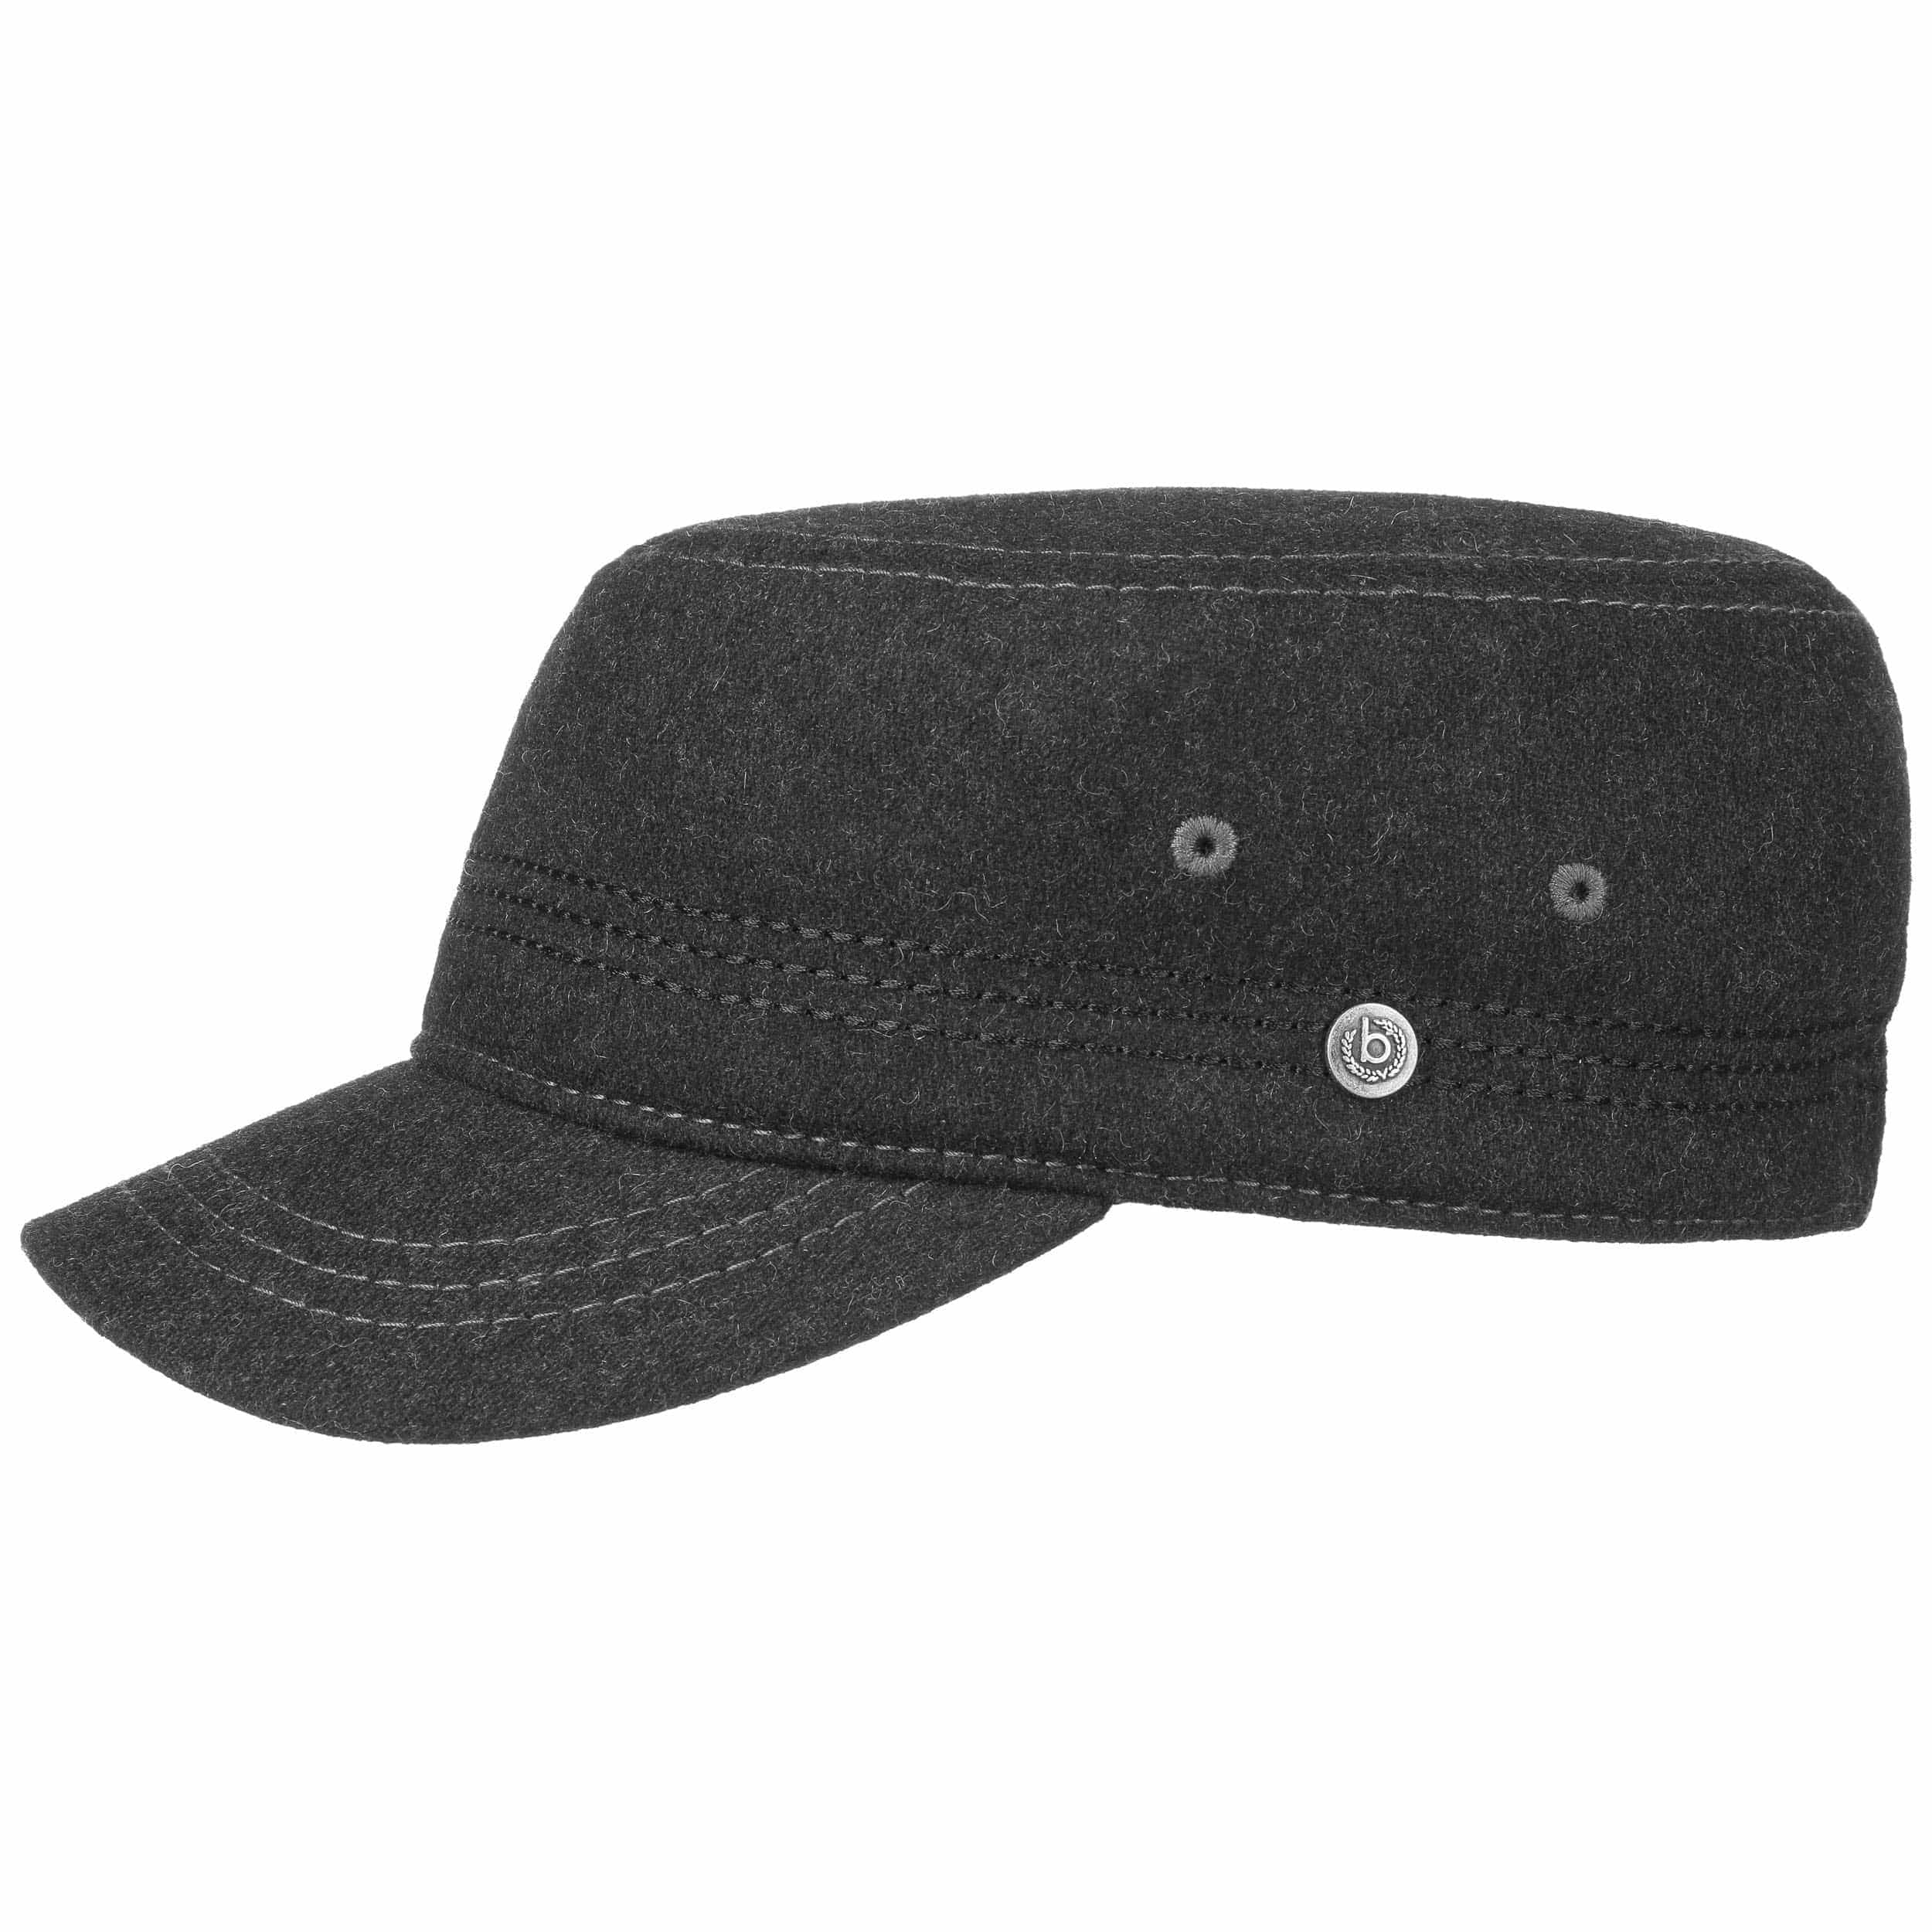 Winter Army Cap with Lining by bugatti